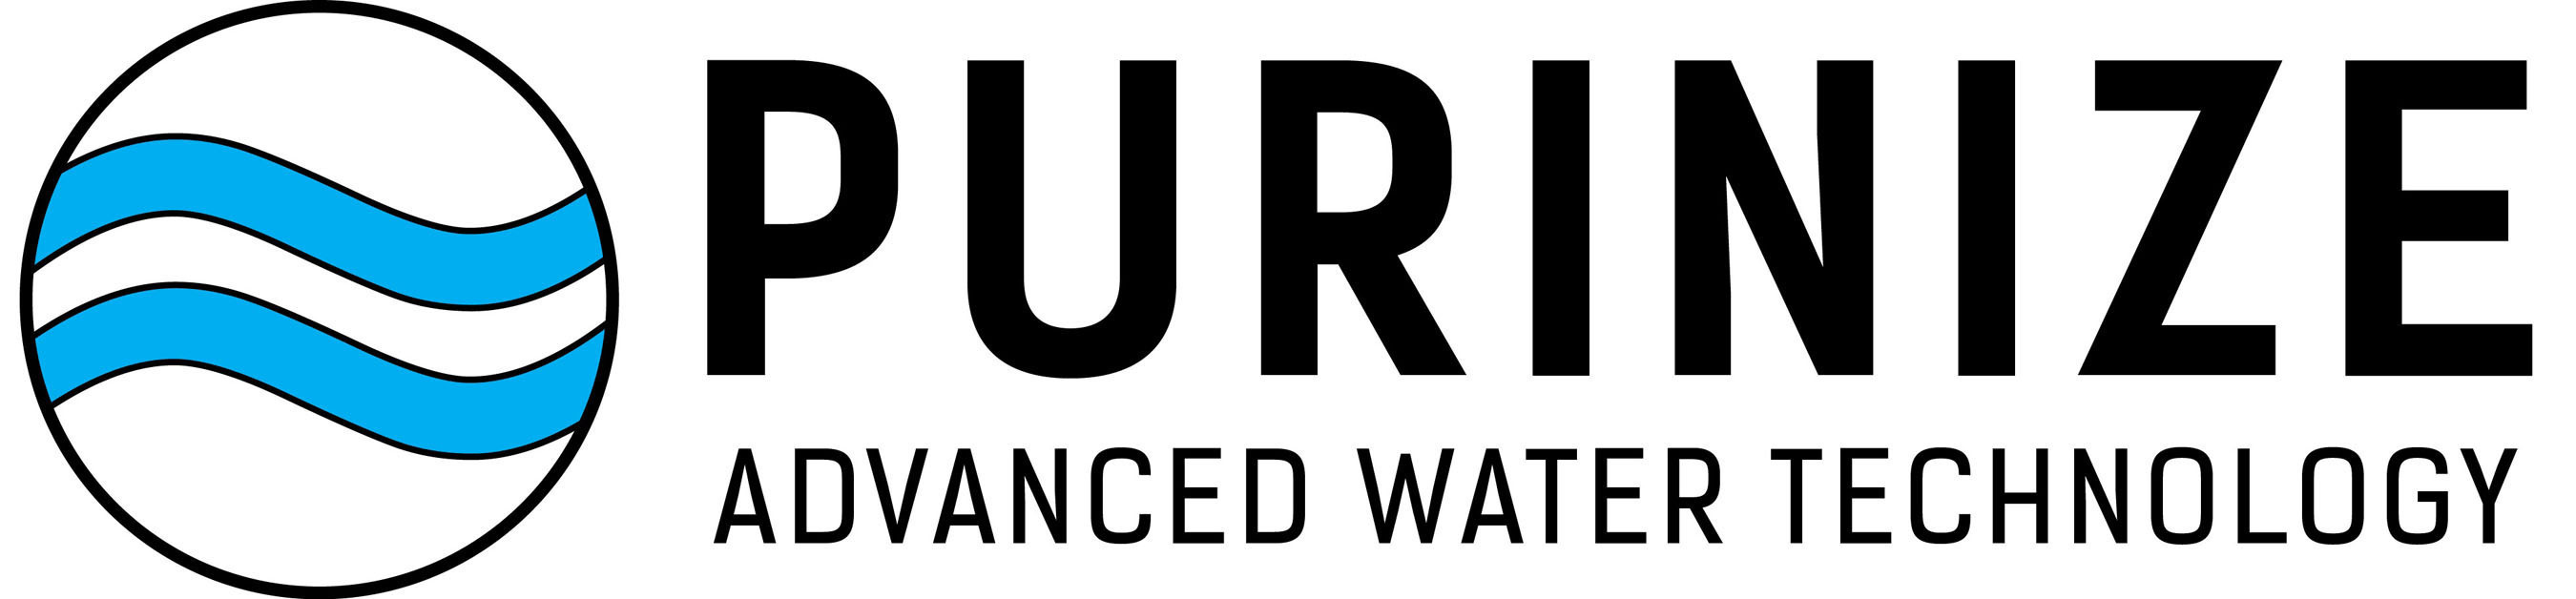 Tests Prove Purinize Water Technology Safest and Most Effective. (PRNewsFoto/store.purinize.com) (PRNewsFoto/STORE.PURINIZE.COM)